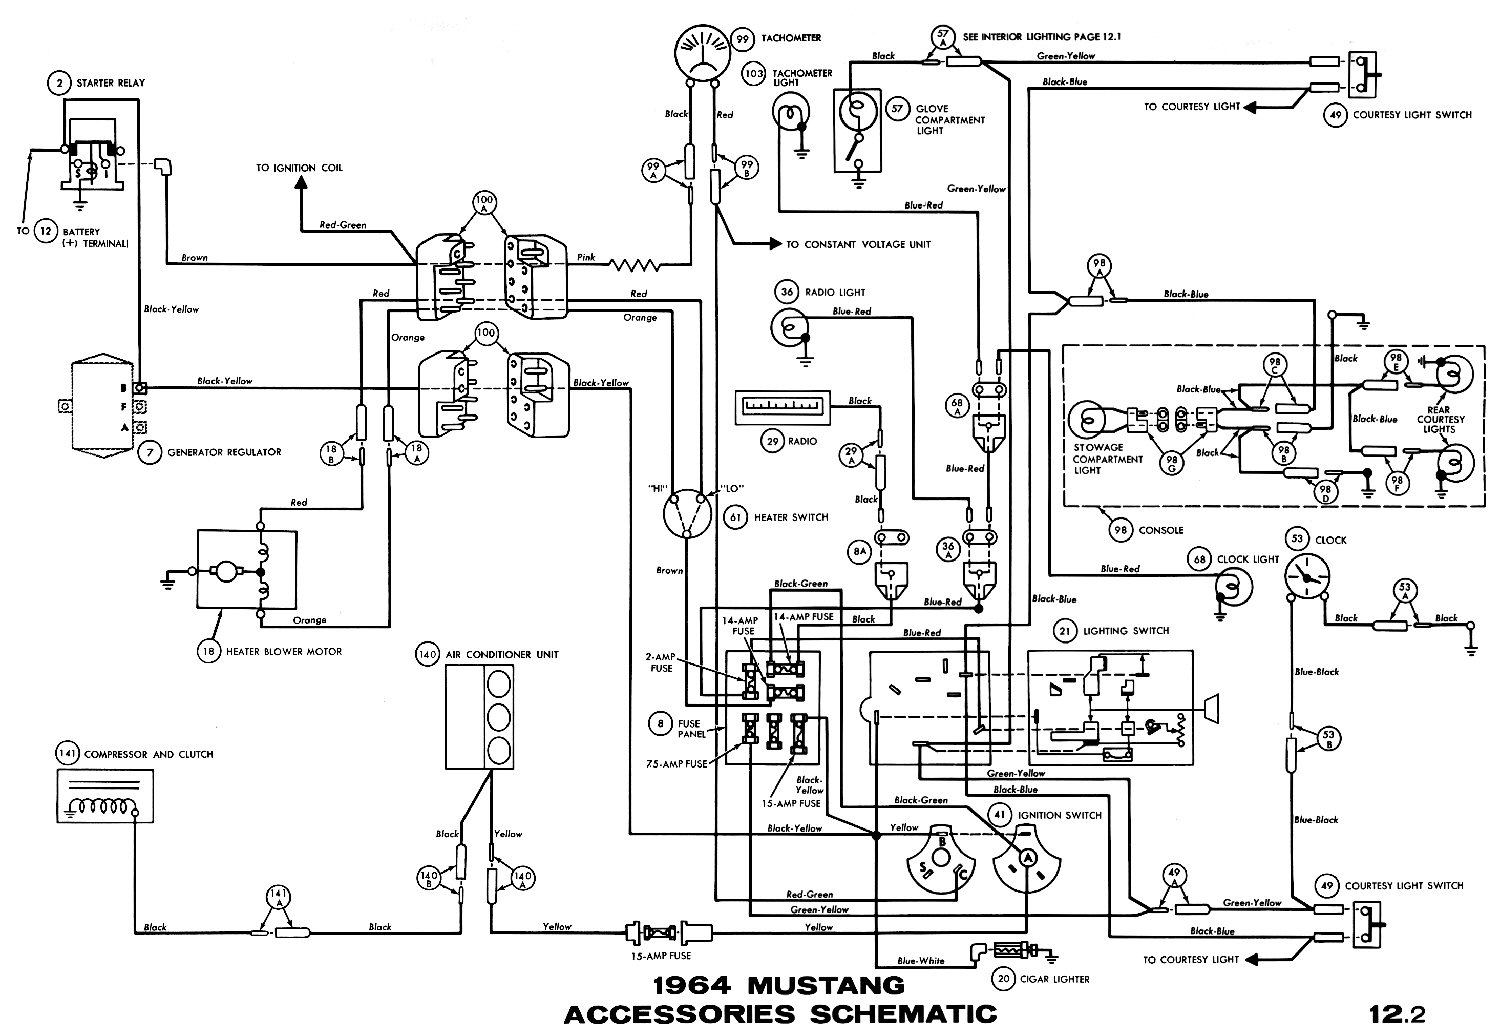 1964 Mustang Wiring Diagrams Average Joe Restoration Car Distributor Diagram Air Conditioner